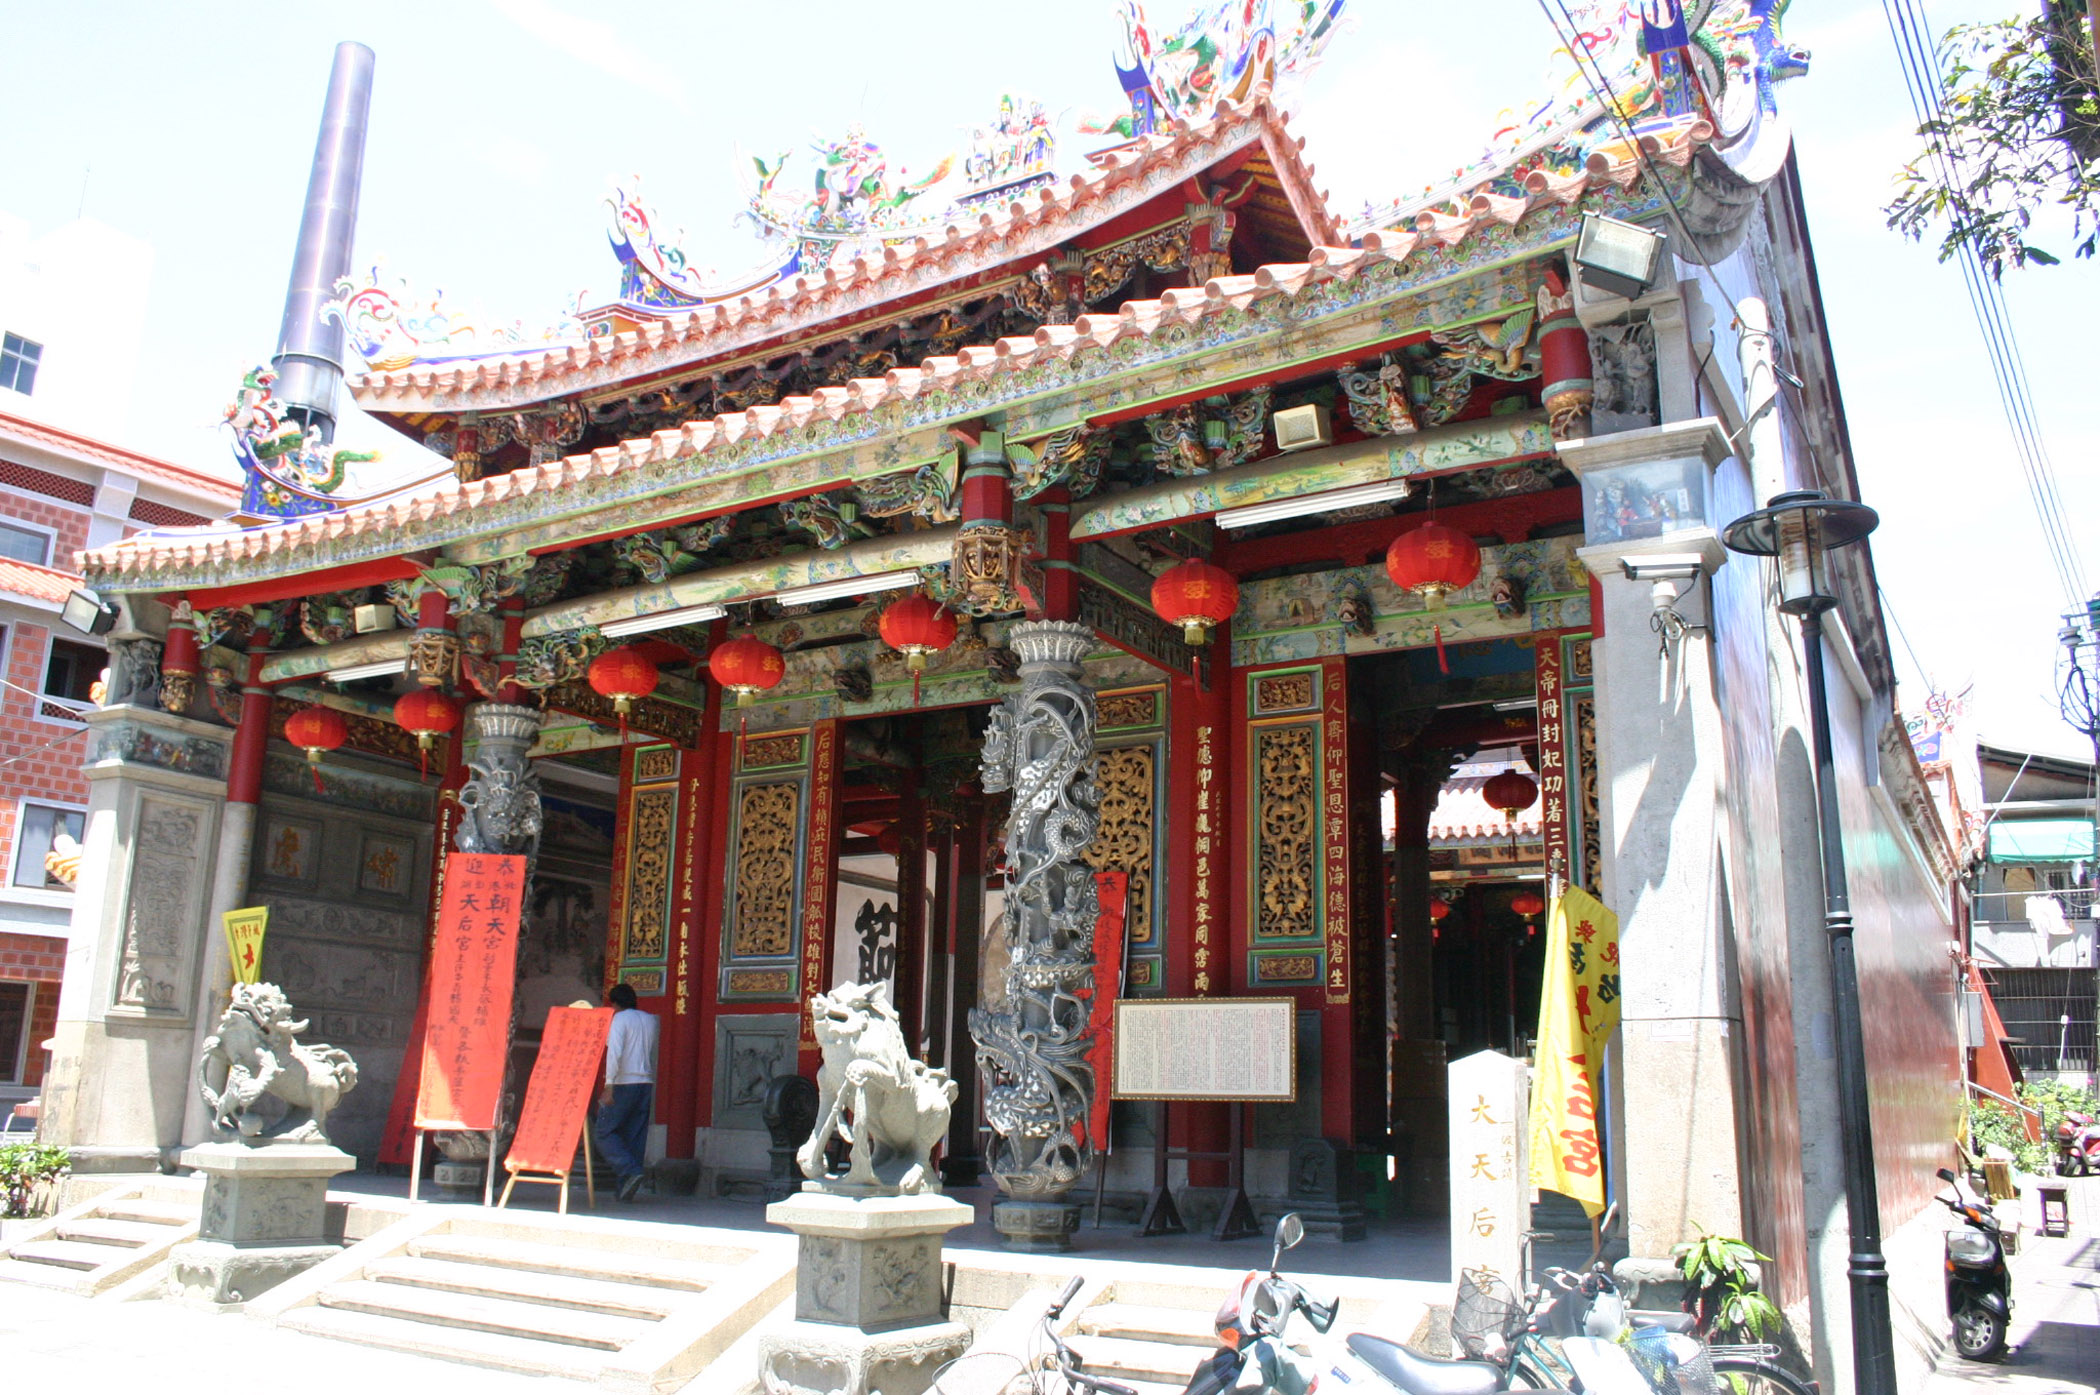 Air ionizers installed in Grand Matsu Temple in Tainan to protect murals from pollution